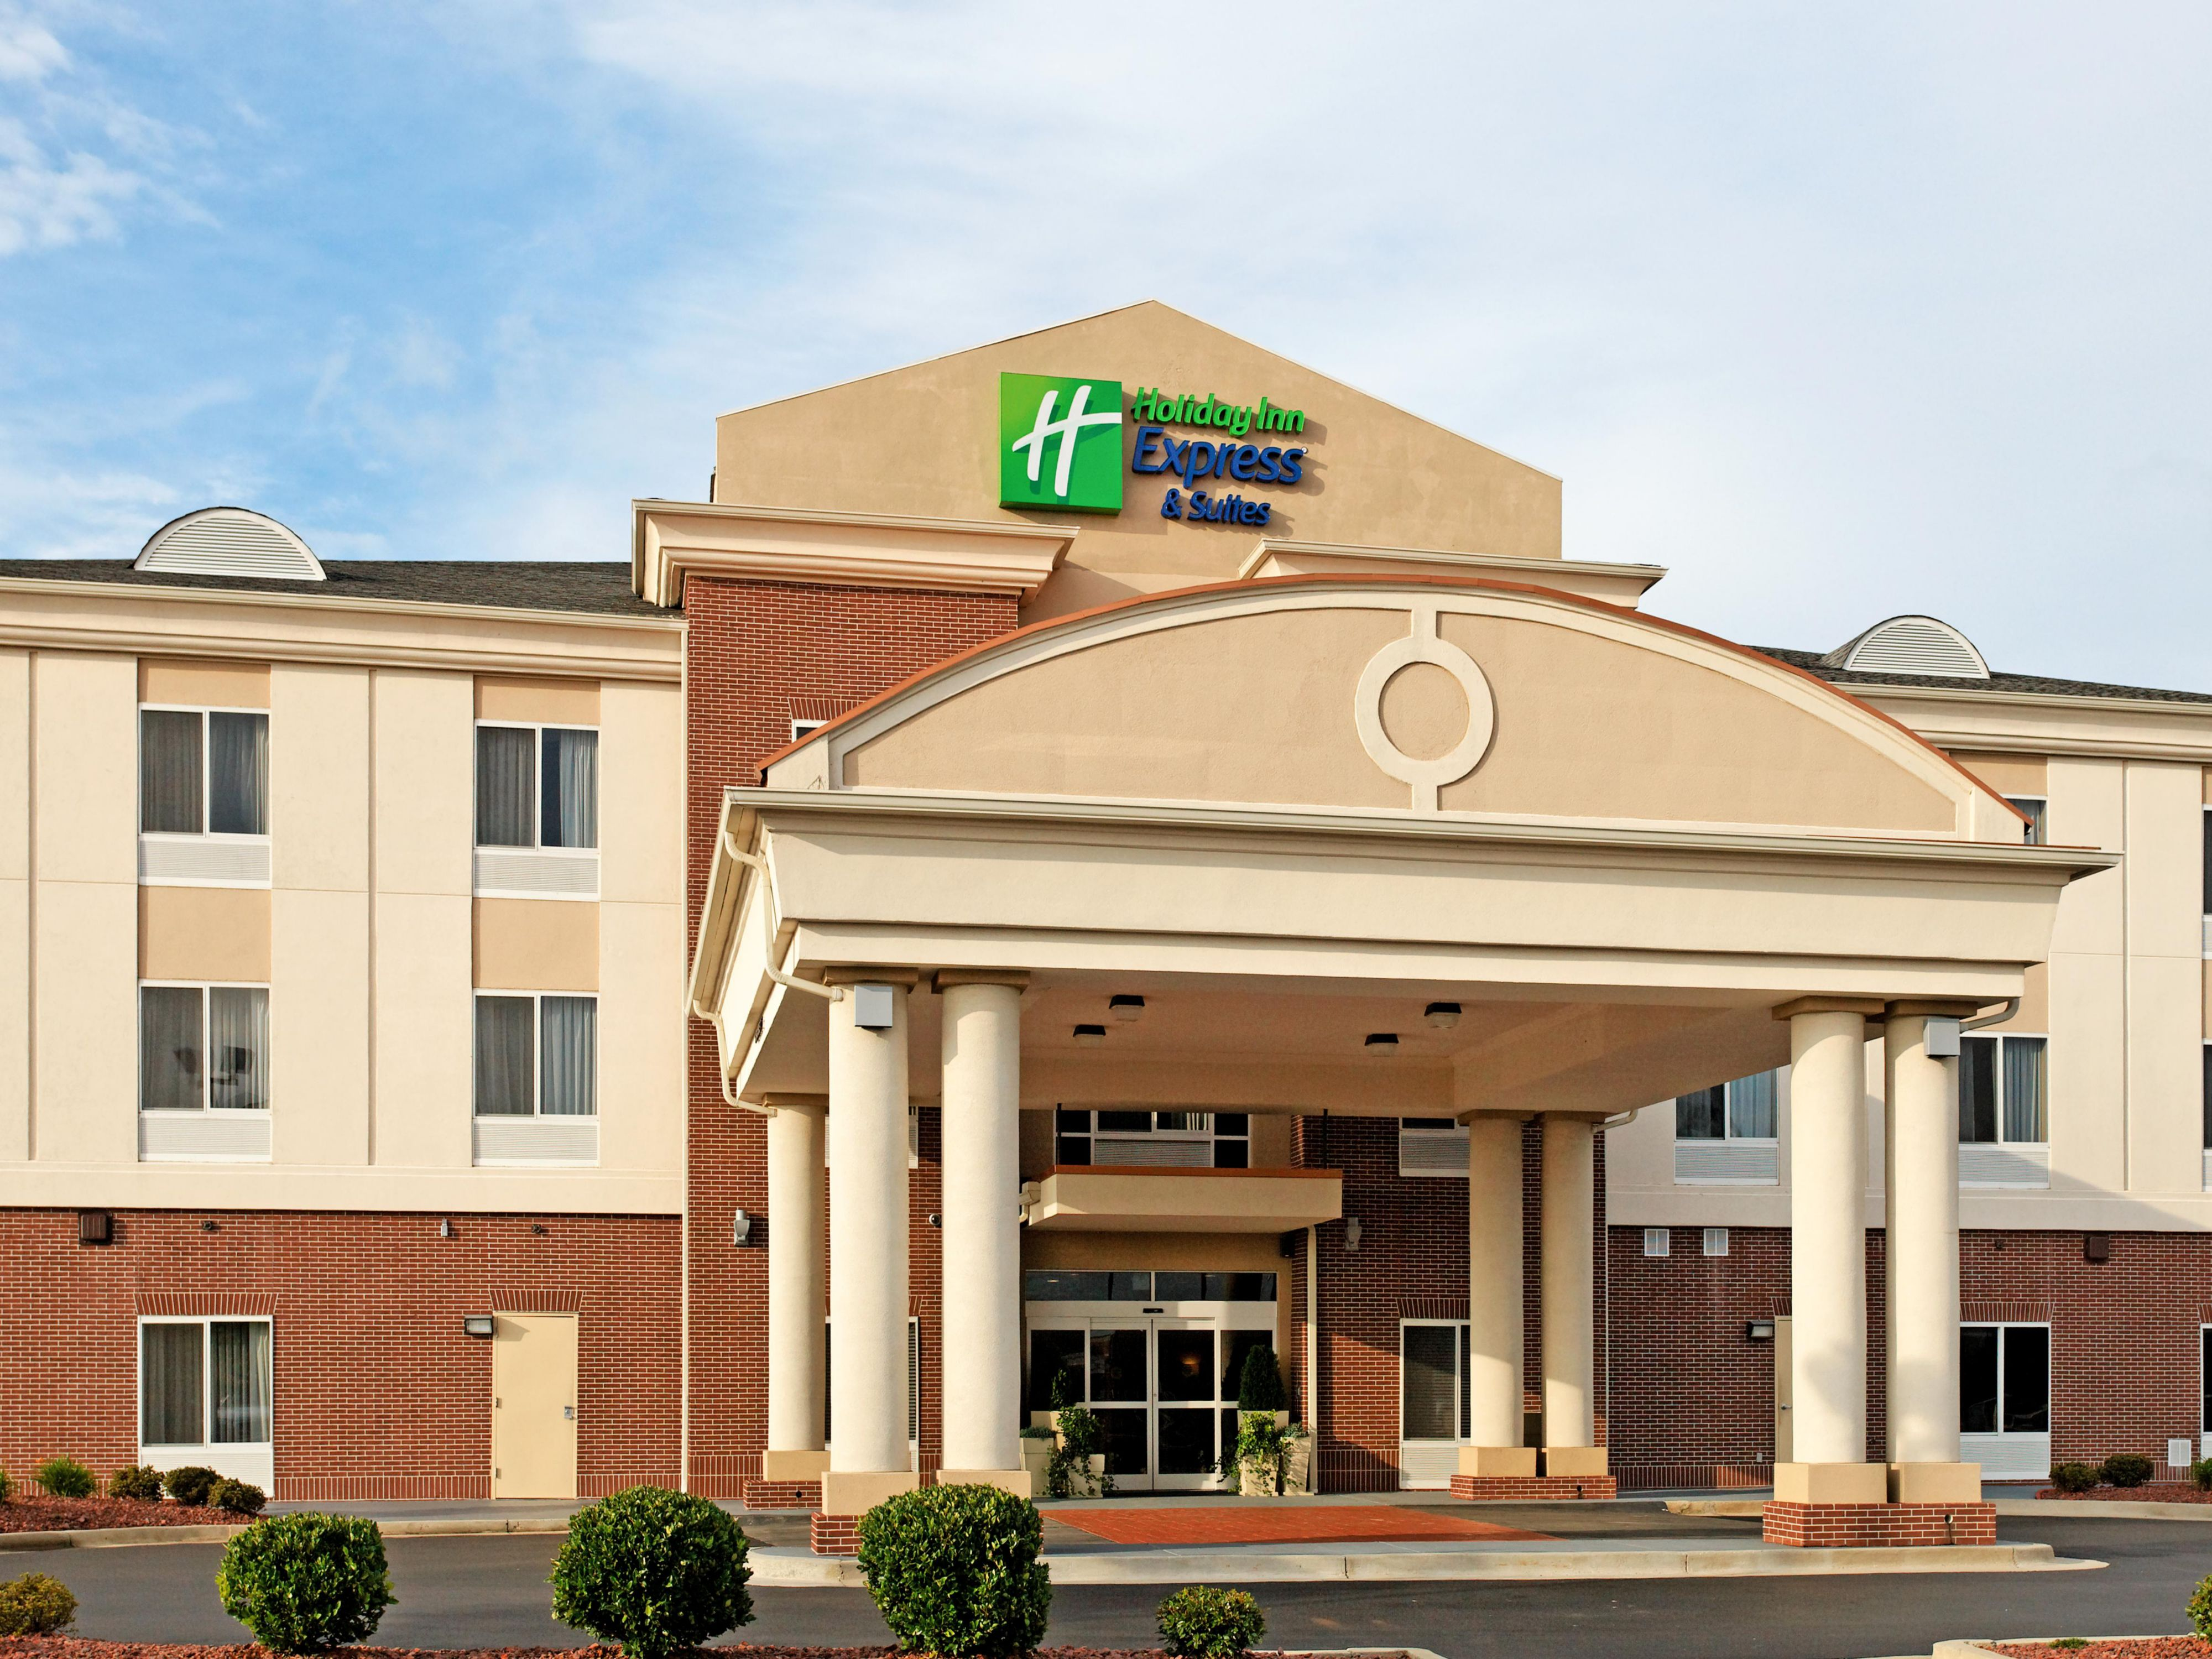 Welcome to Holiday Inn Express & Suites Athens